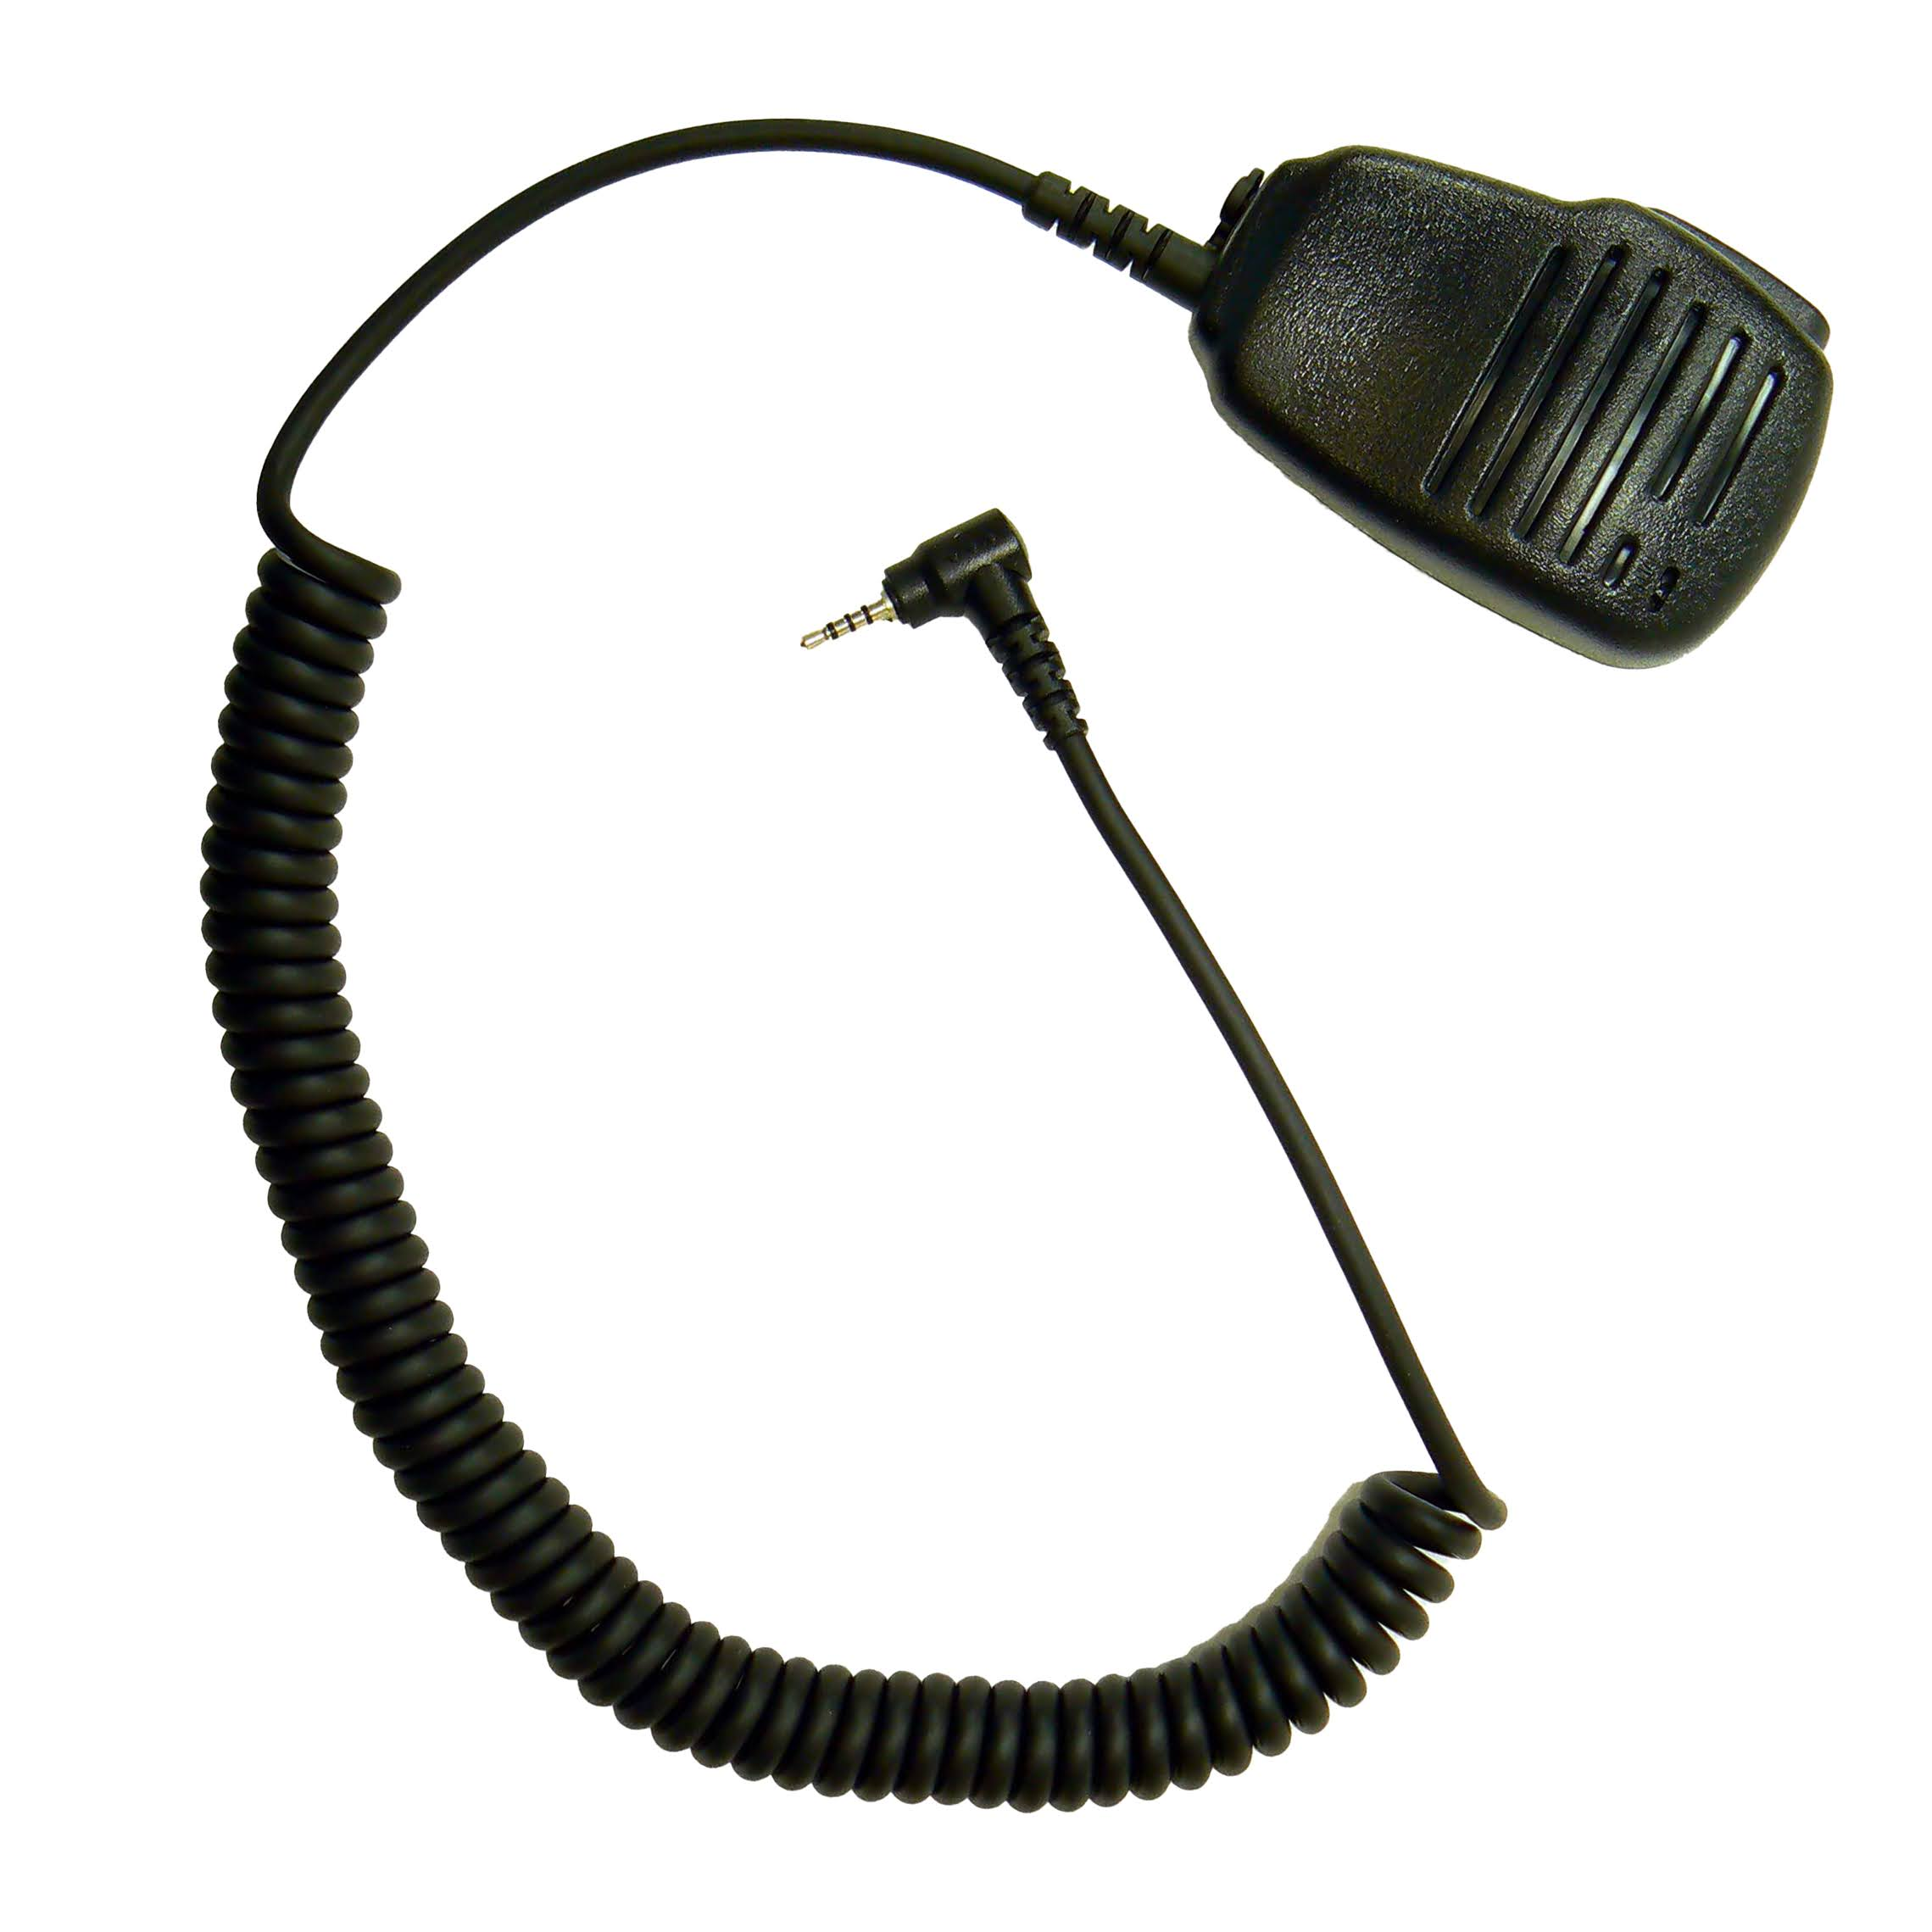 Plug-in microphone for radio communications Single pin jack